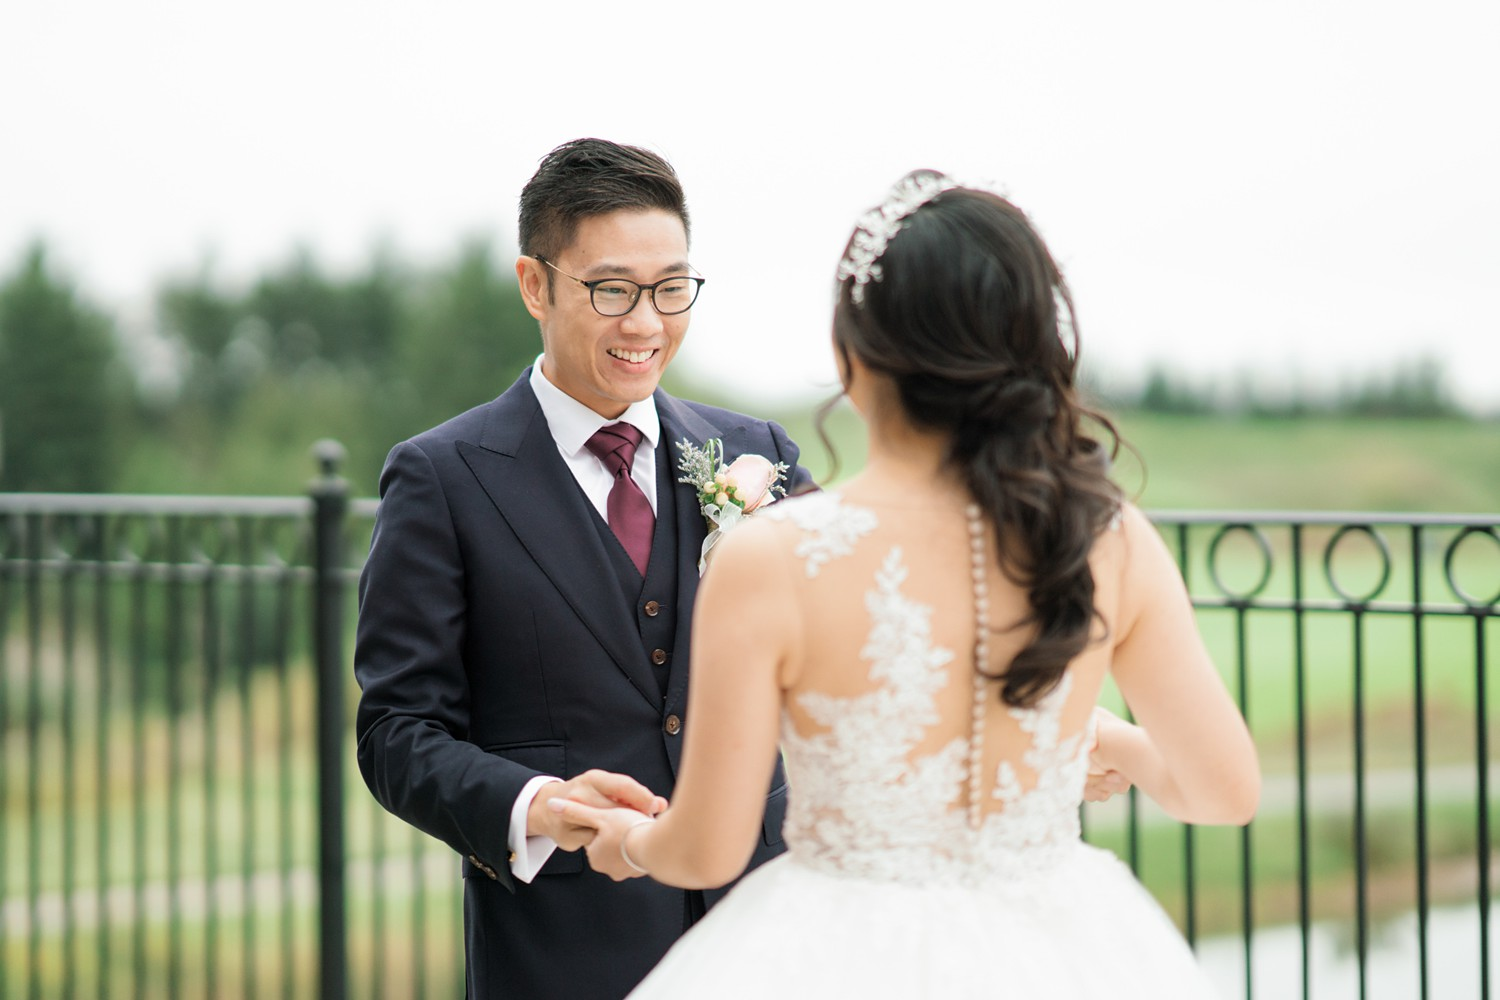 First_Look_Eagles_Nest_Golf_Club_Wedding_Photos_Toronto_Wedding_Photographer-Rhythm_Photography